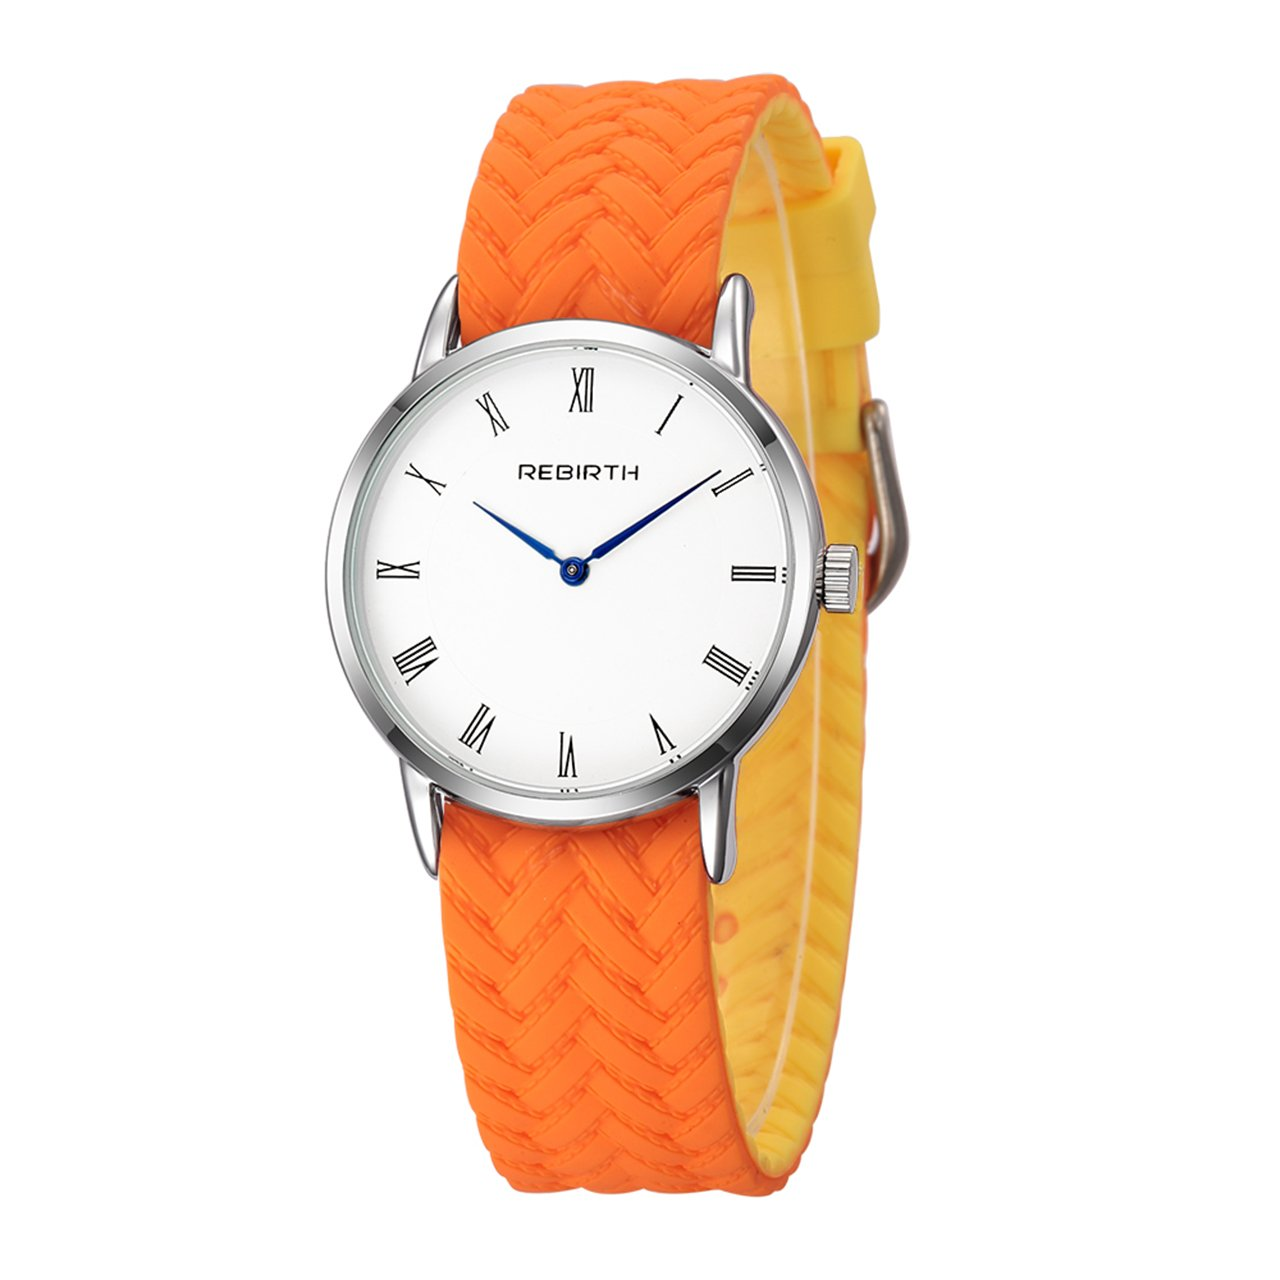 Top Plaza Unisex Casual Simple Silicone Strap Analog Quartz Watch Unique Reversible Doulbe Color Band Japanese Quartz Waterproof Watch(Orange and Yellow)